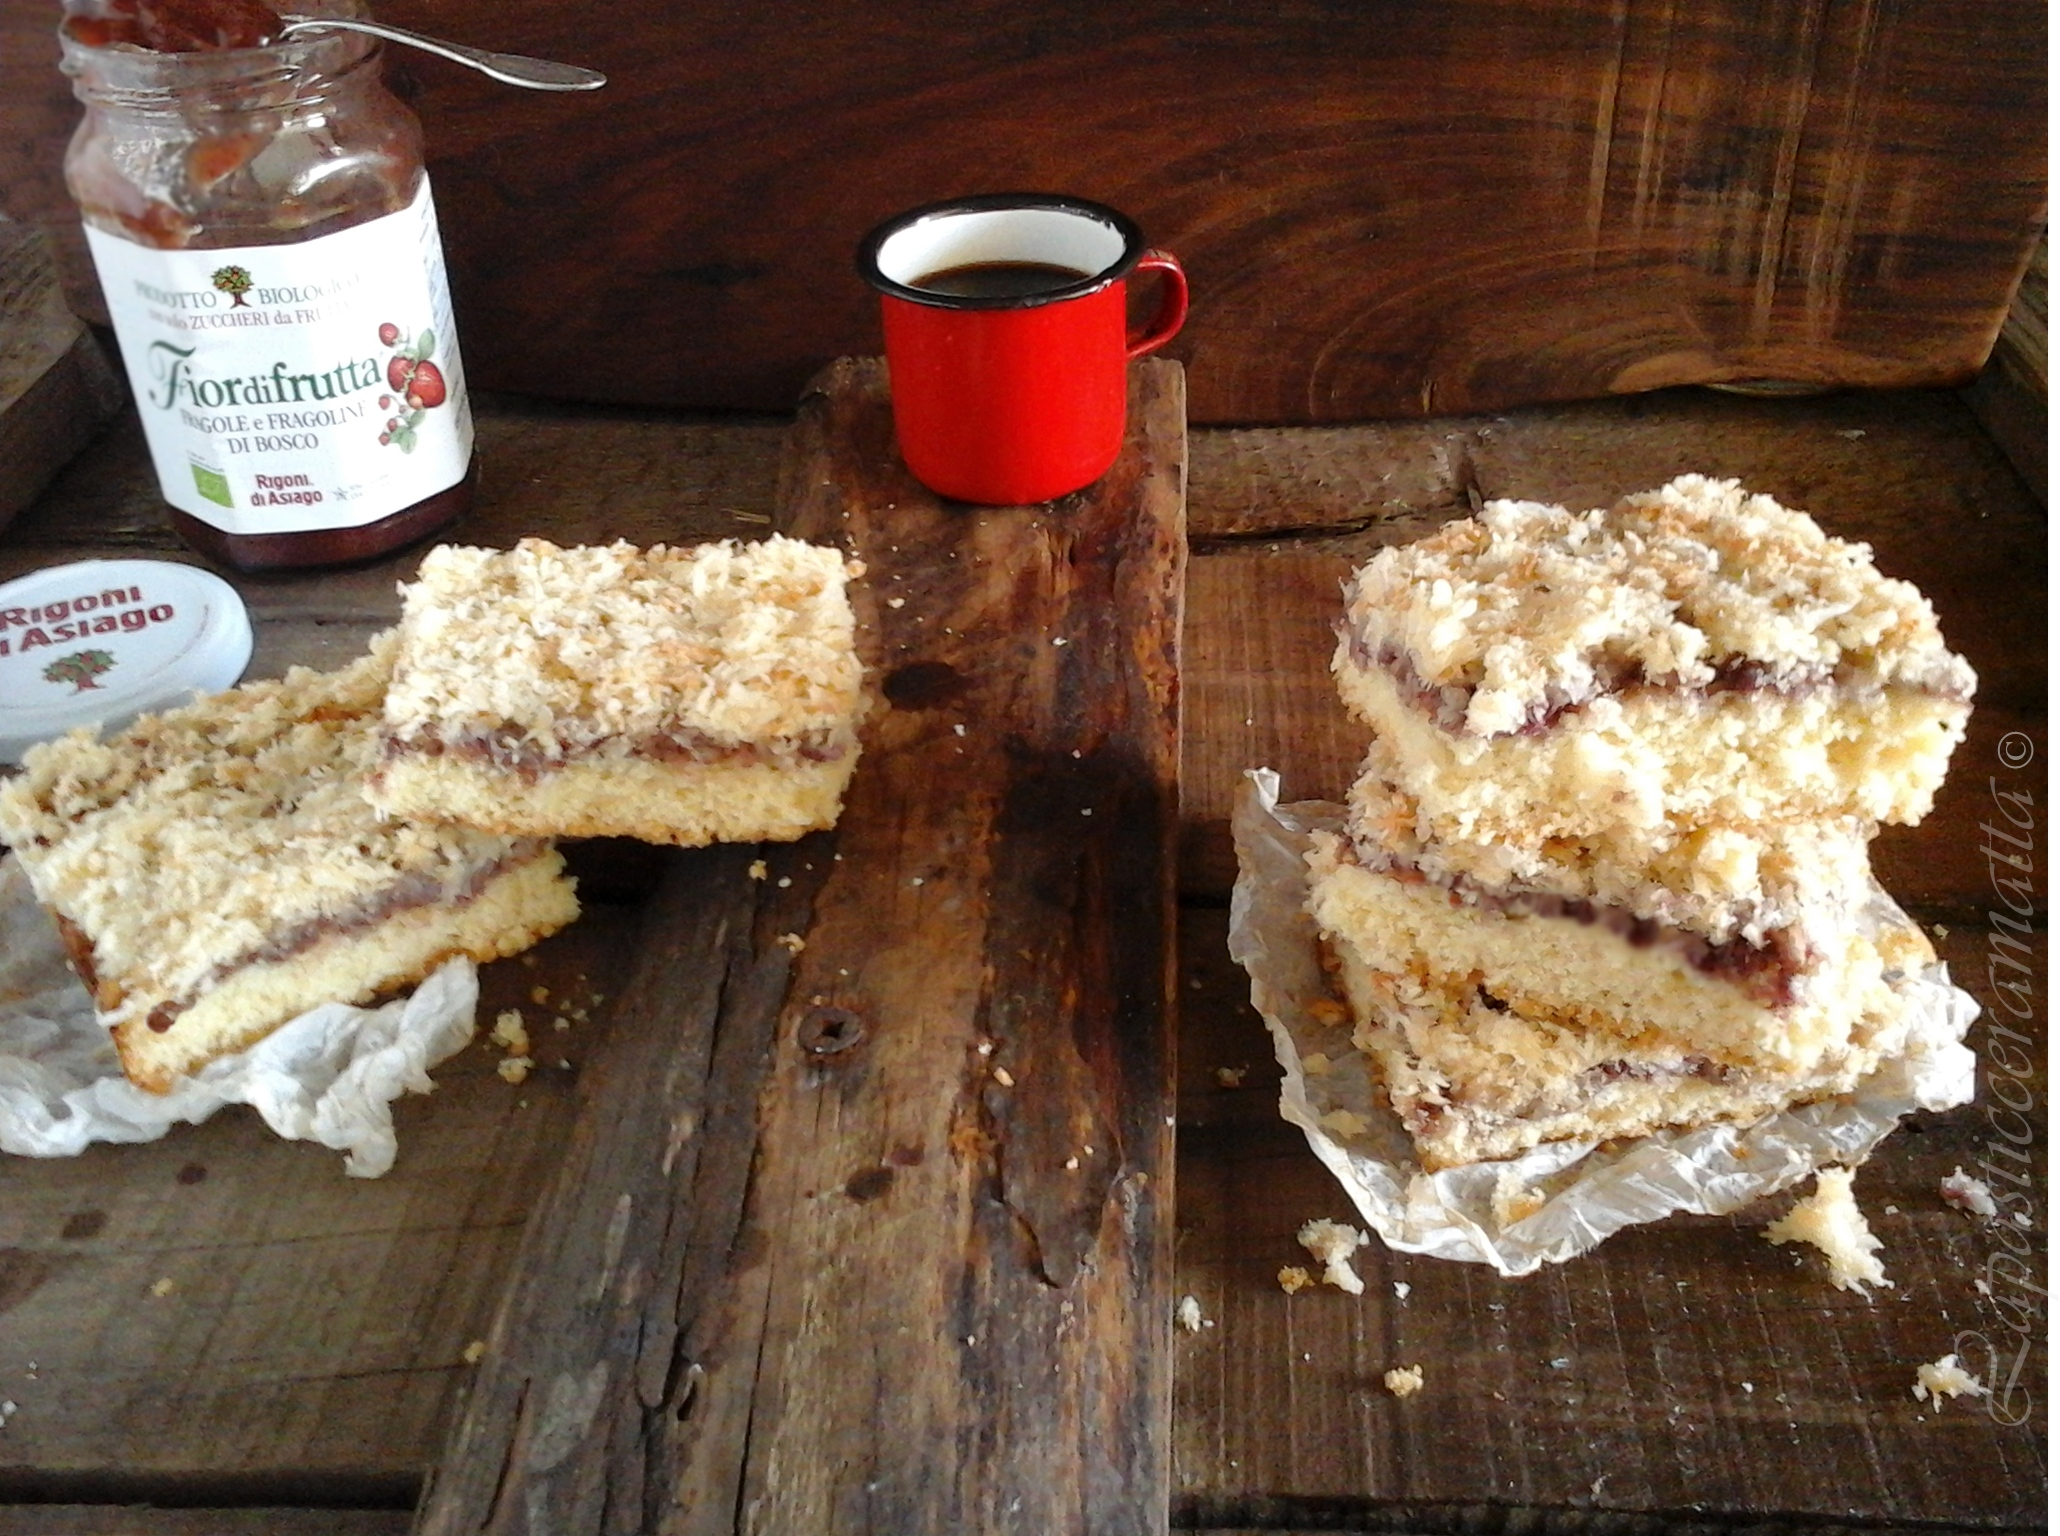 Coconut and jam slice (dolce australiano)